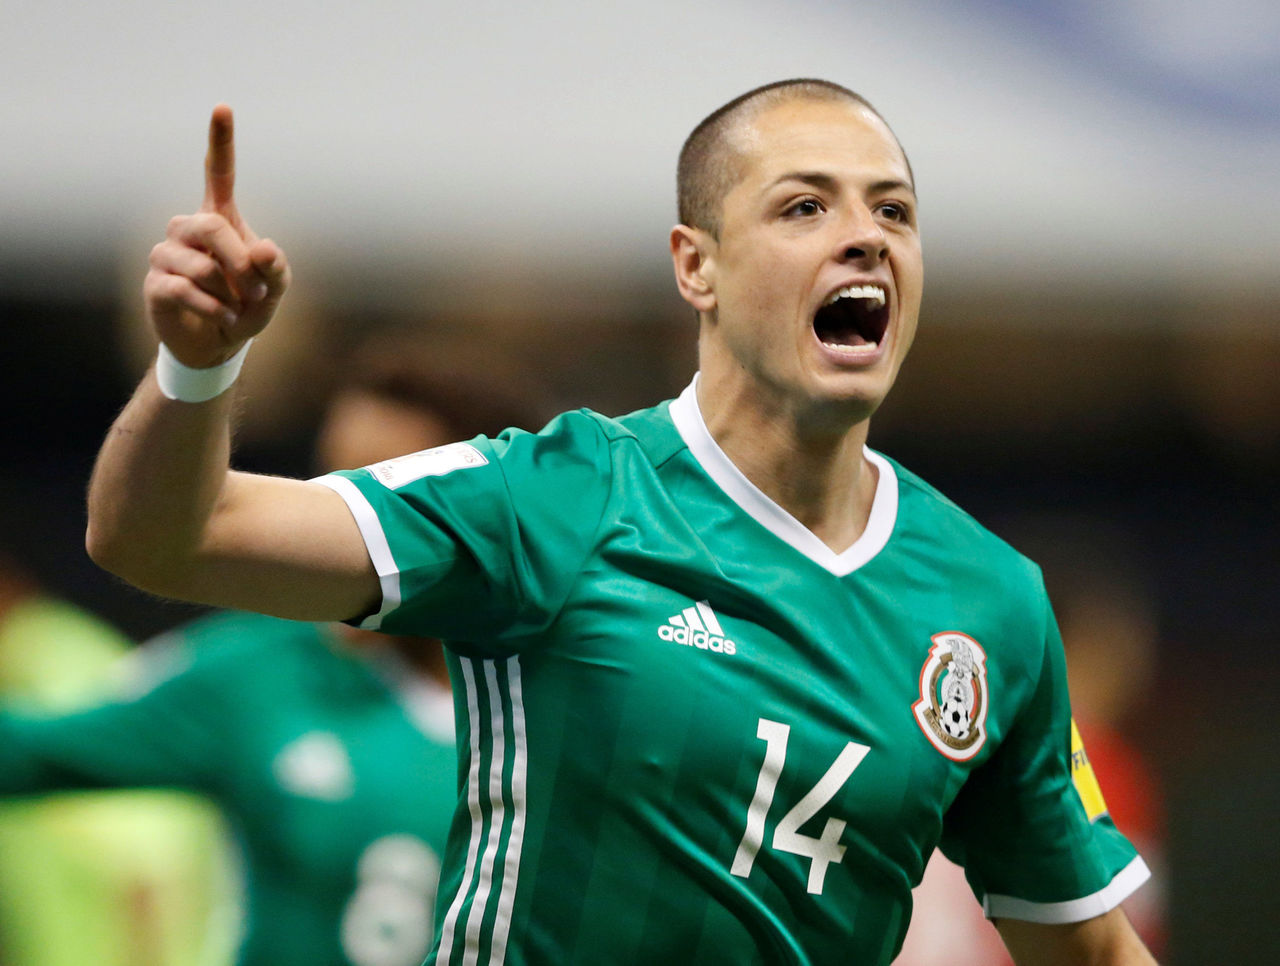 Cropped 2017 03 25t024317z 1729860960 rc1302f4fea0 rtrmadp 3 soccer worldcup mex cri